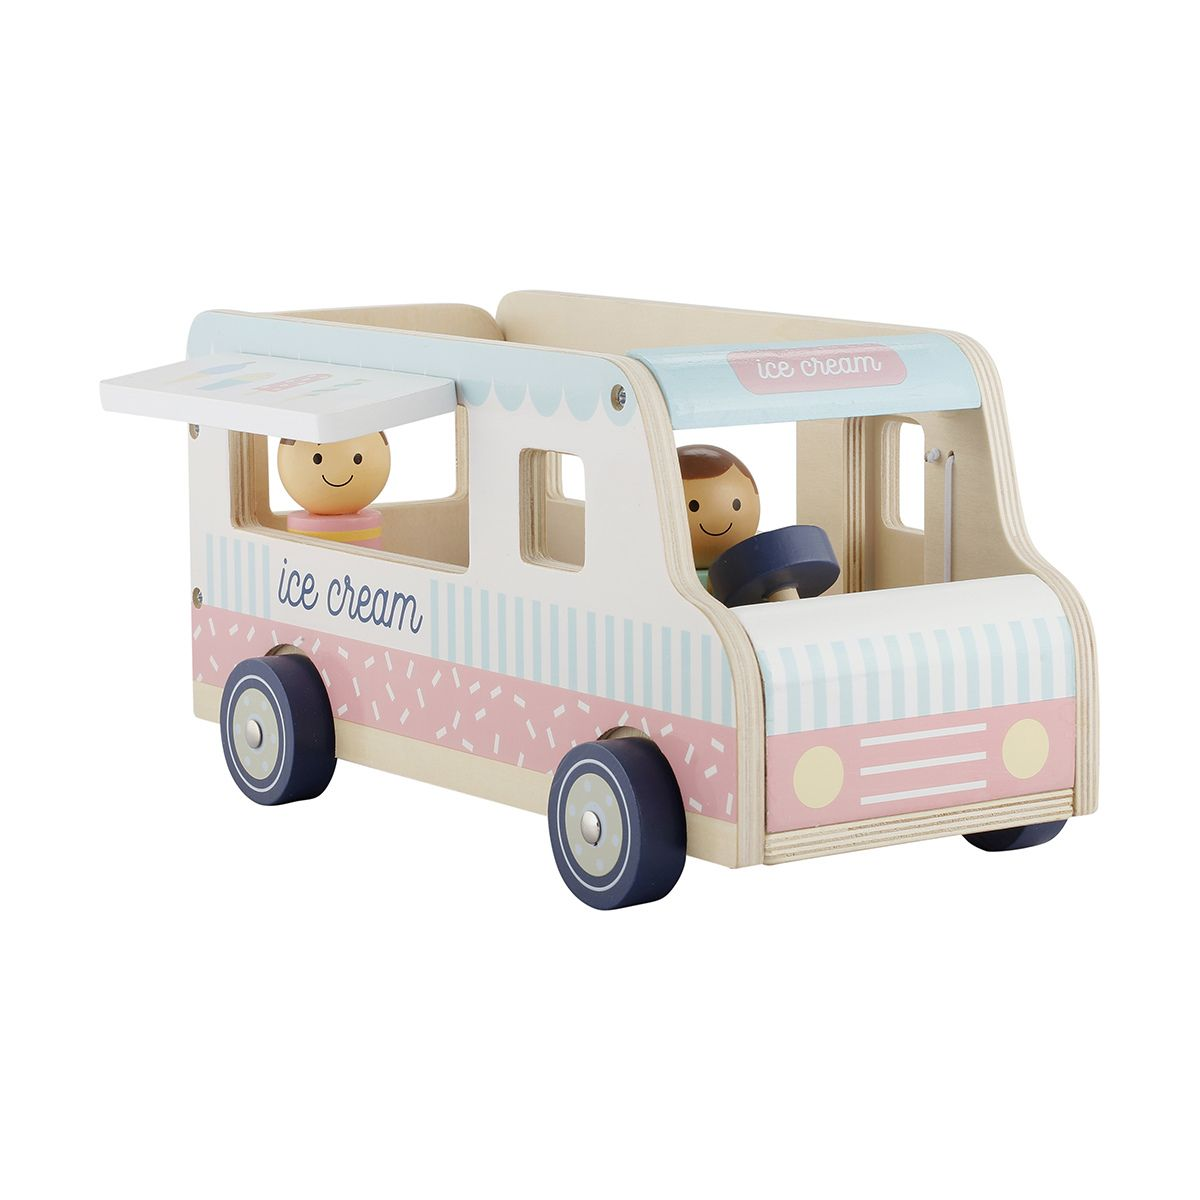 wooden ice cream truck toy | wooden toys | toy trucks, toys